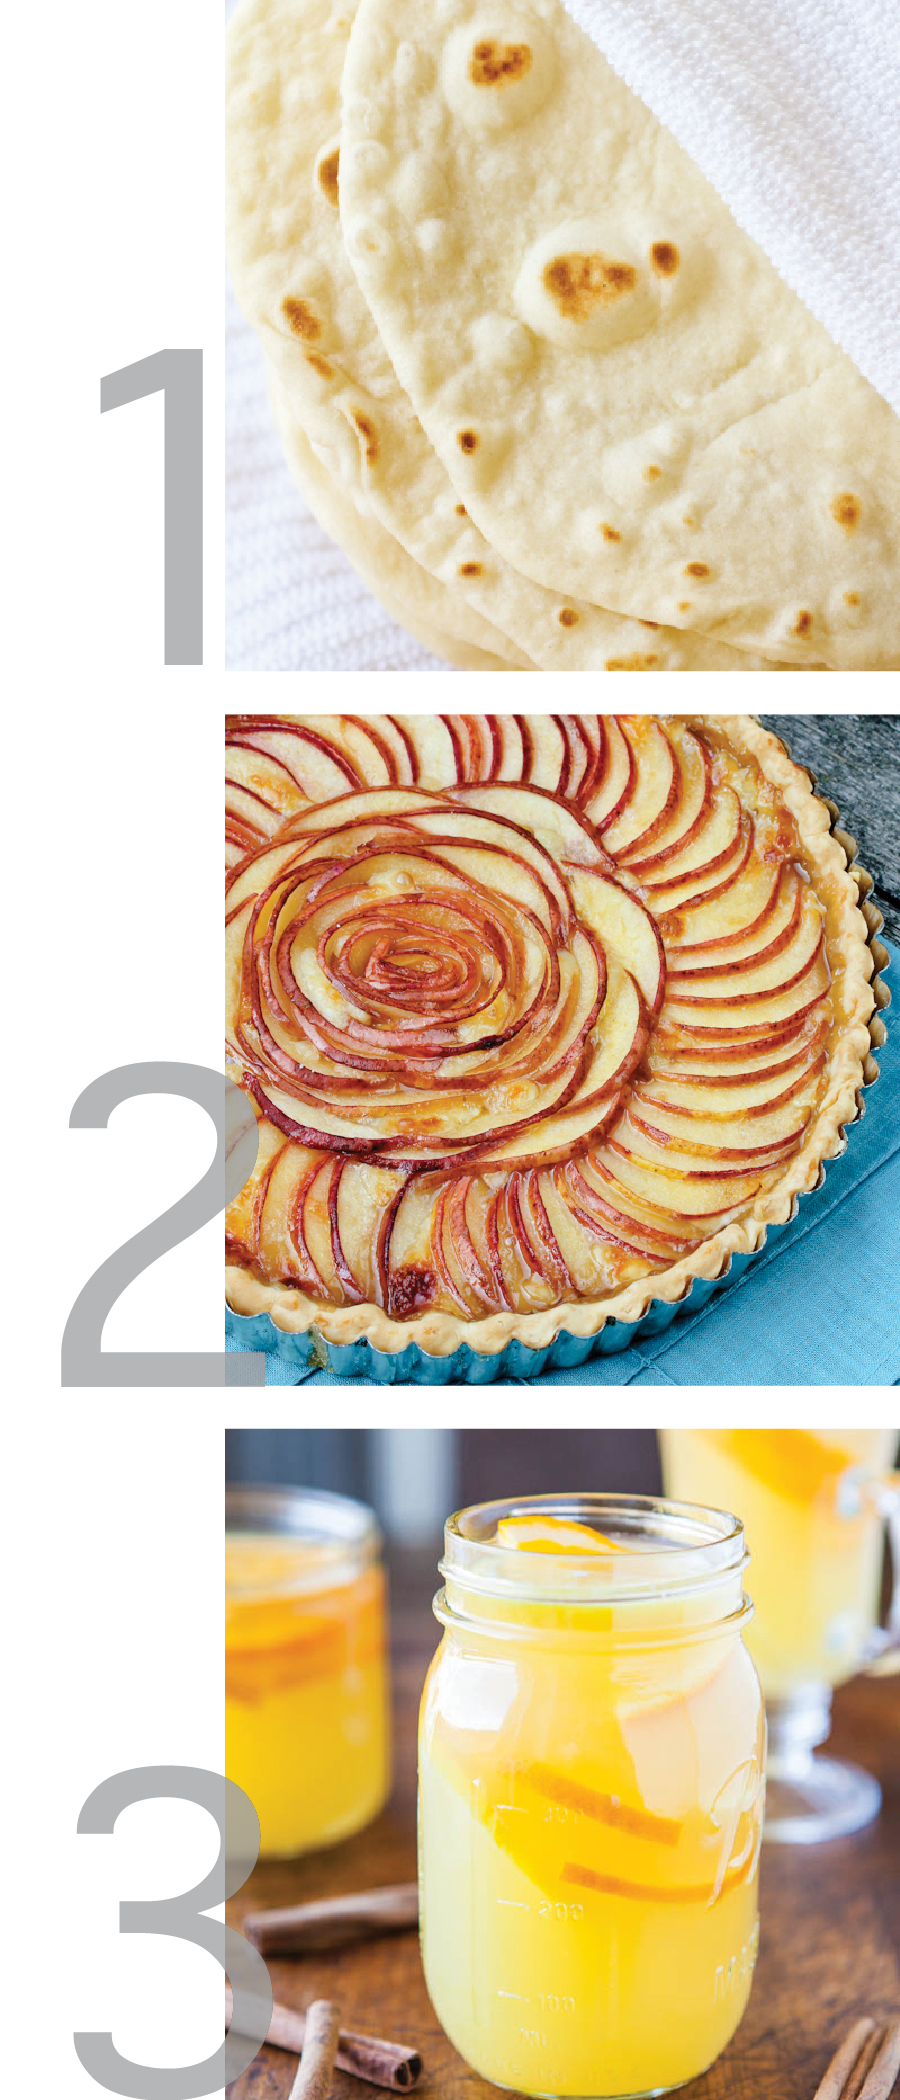 this image is a simple graphic with images for Homemade Tortillas, Brie and Pear Tart, and Chai Spiced Triple Citrus Tea